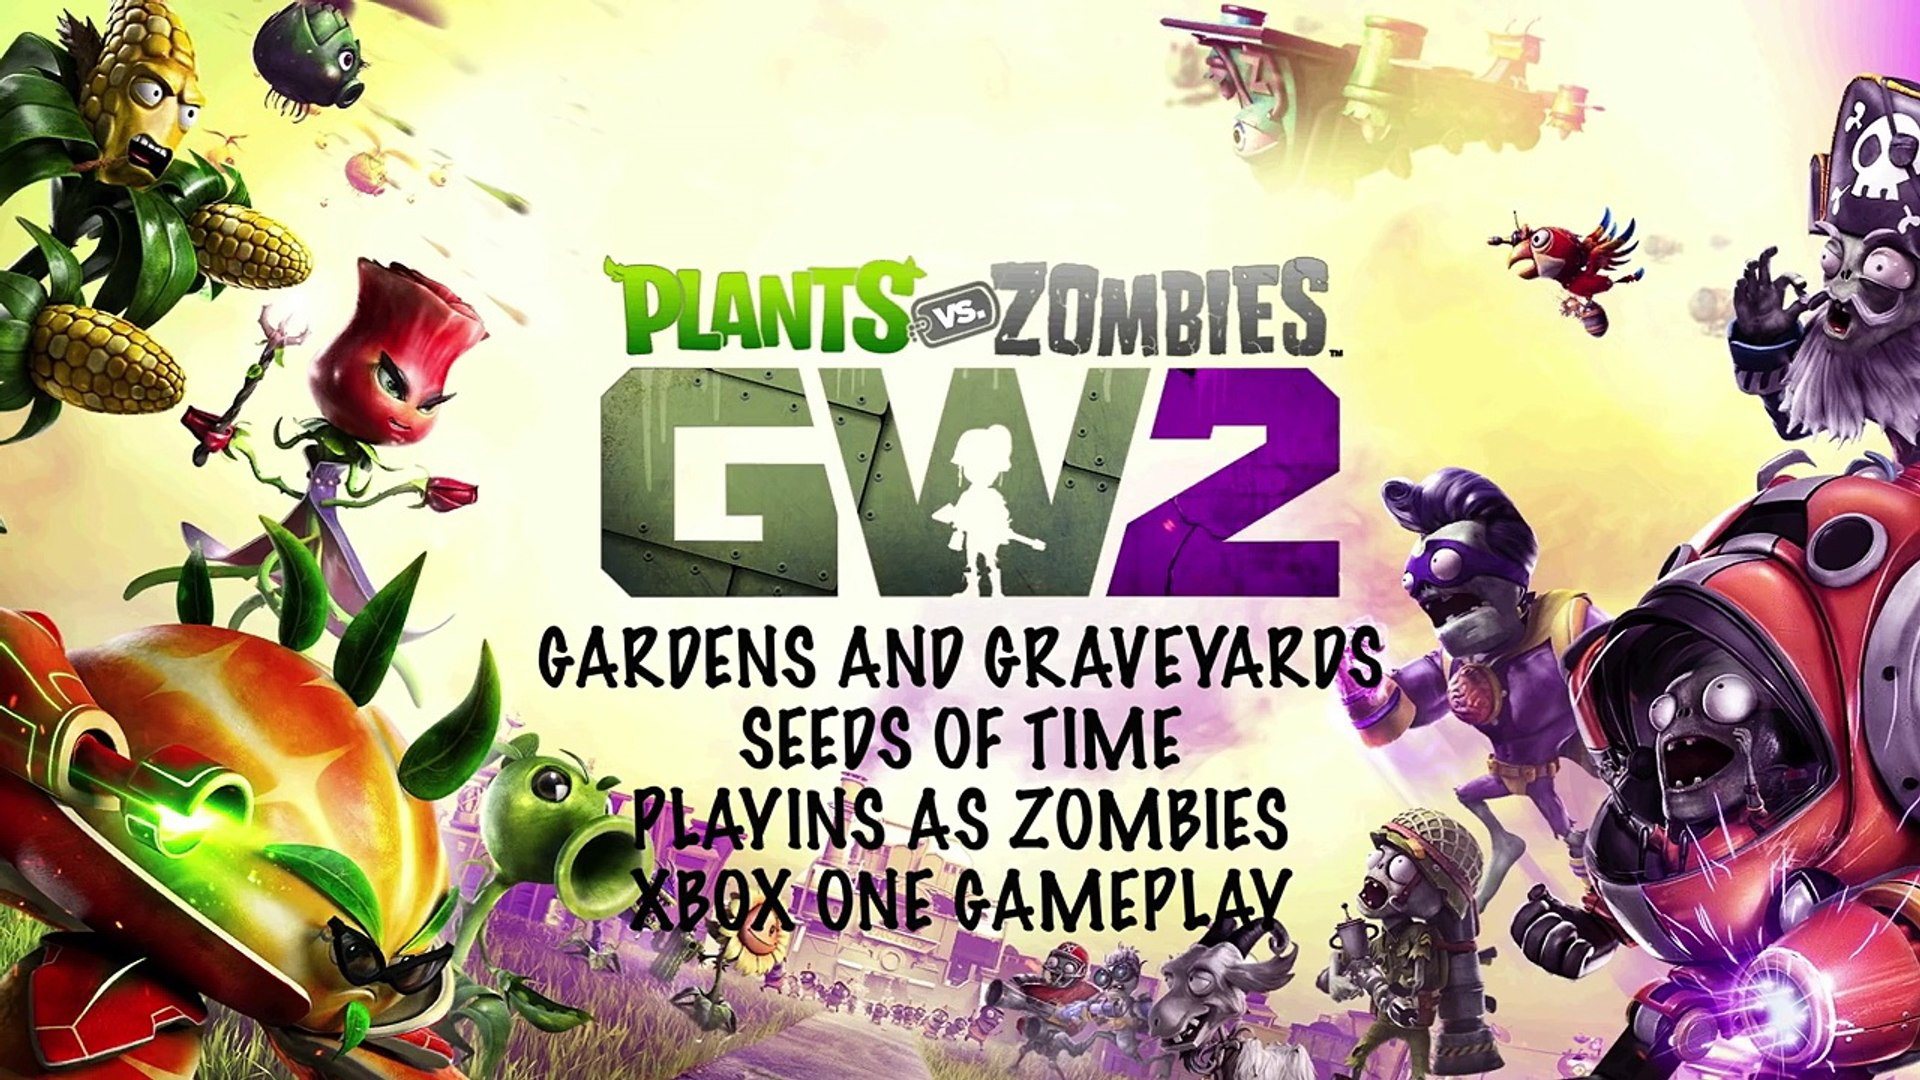 Plants vs Zombies Garden Warfare 2 Gardens and Graveyards Seeds of Time Zombie Gameplay